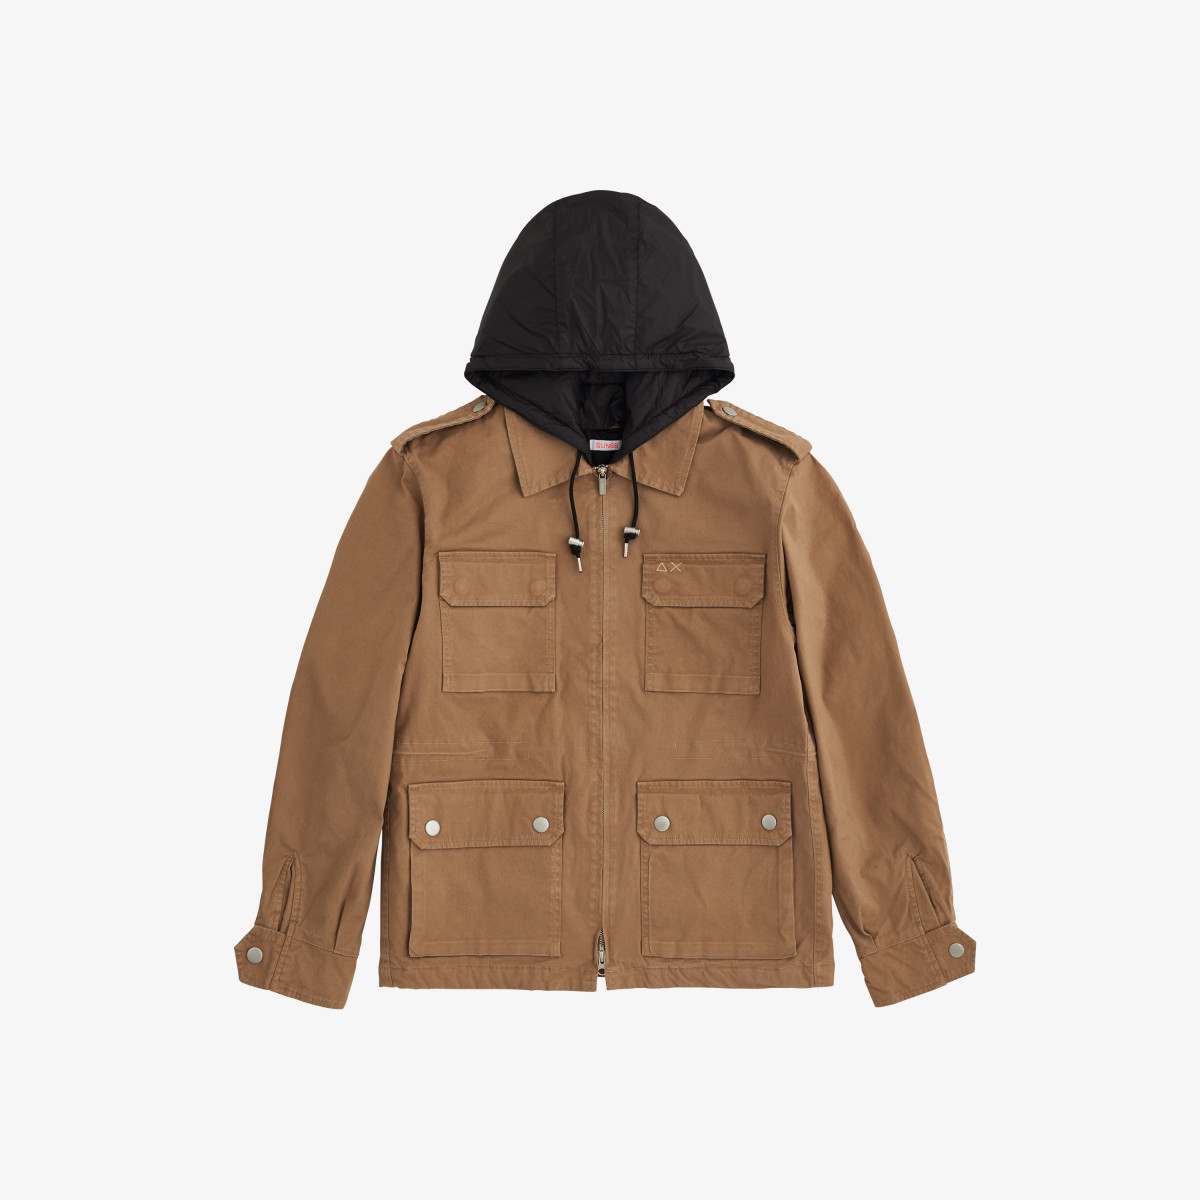 FIELD JACKET COTTON DARK BEIGE